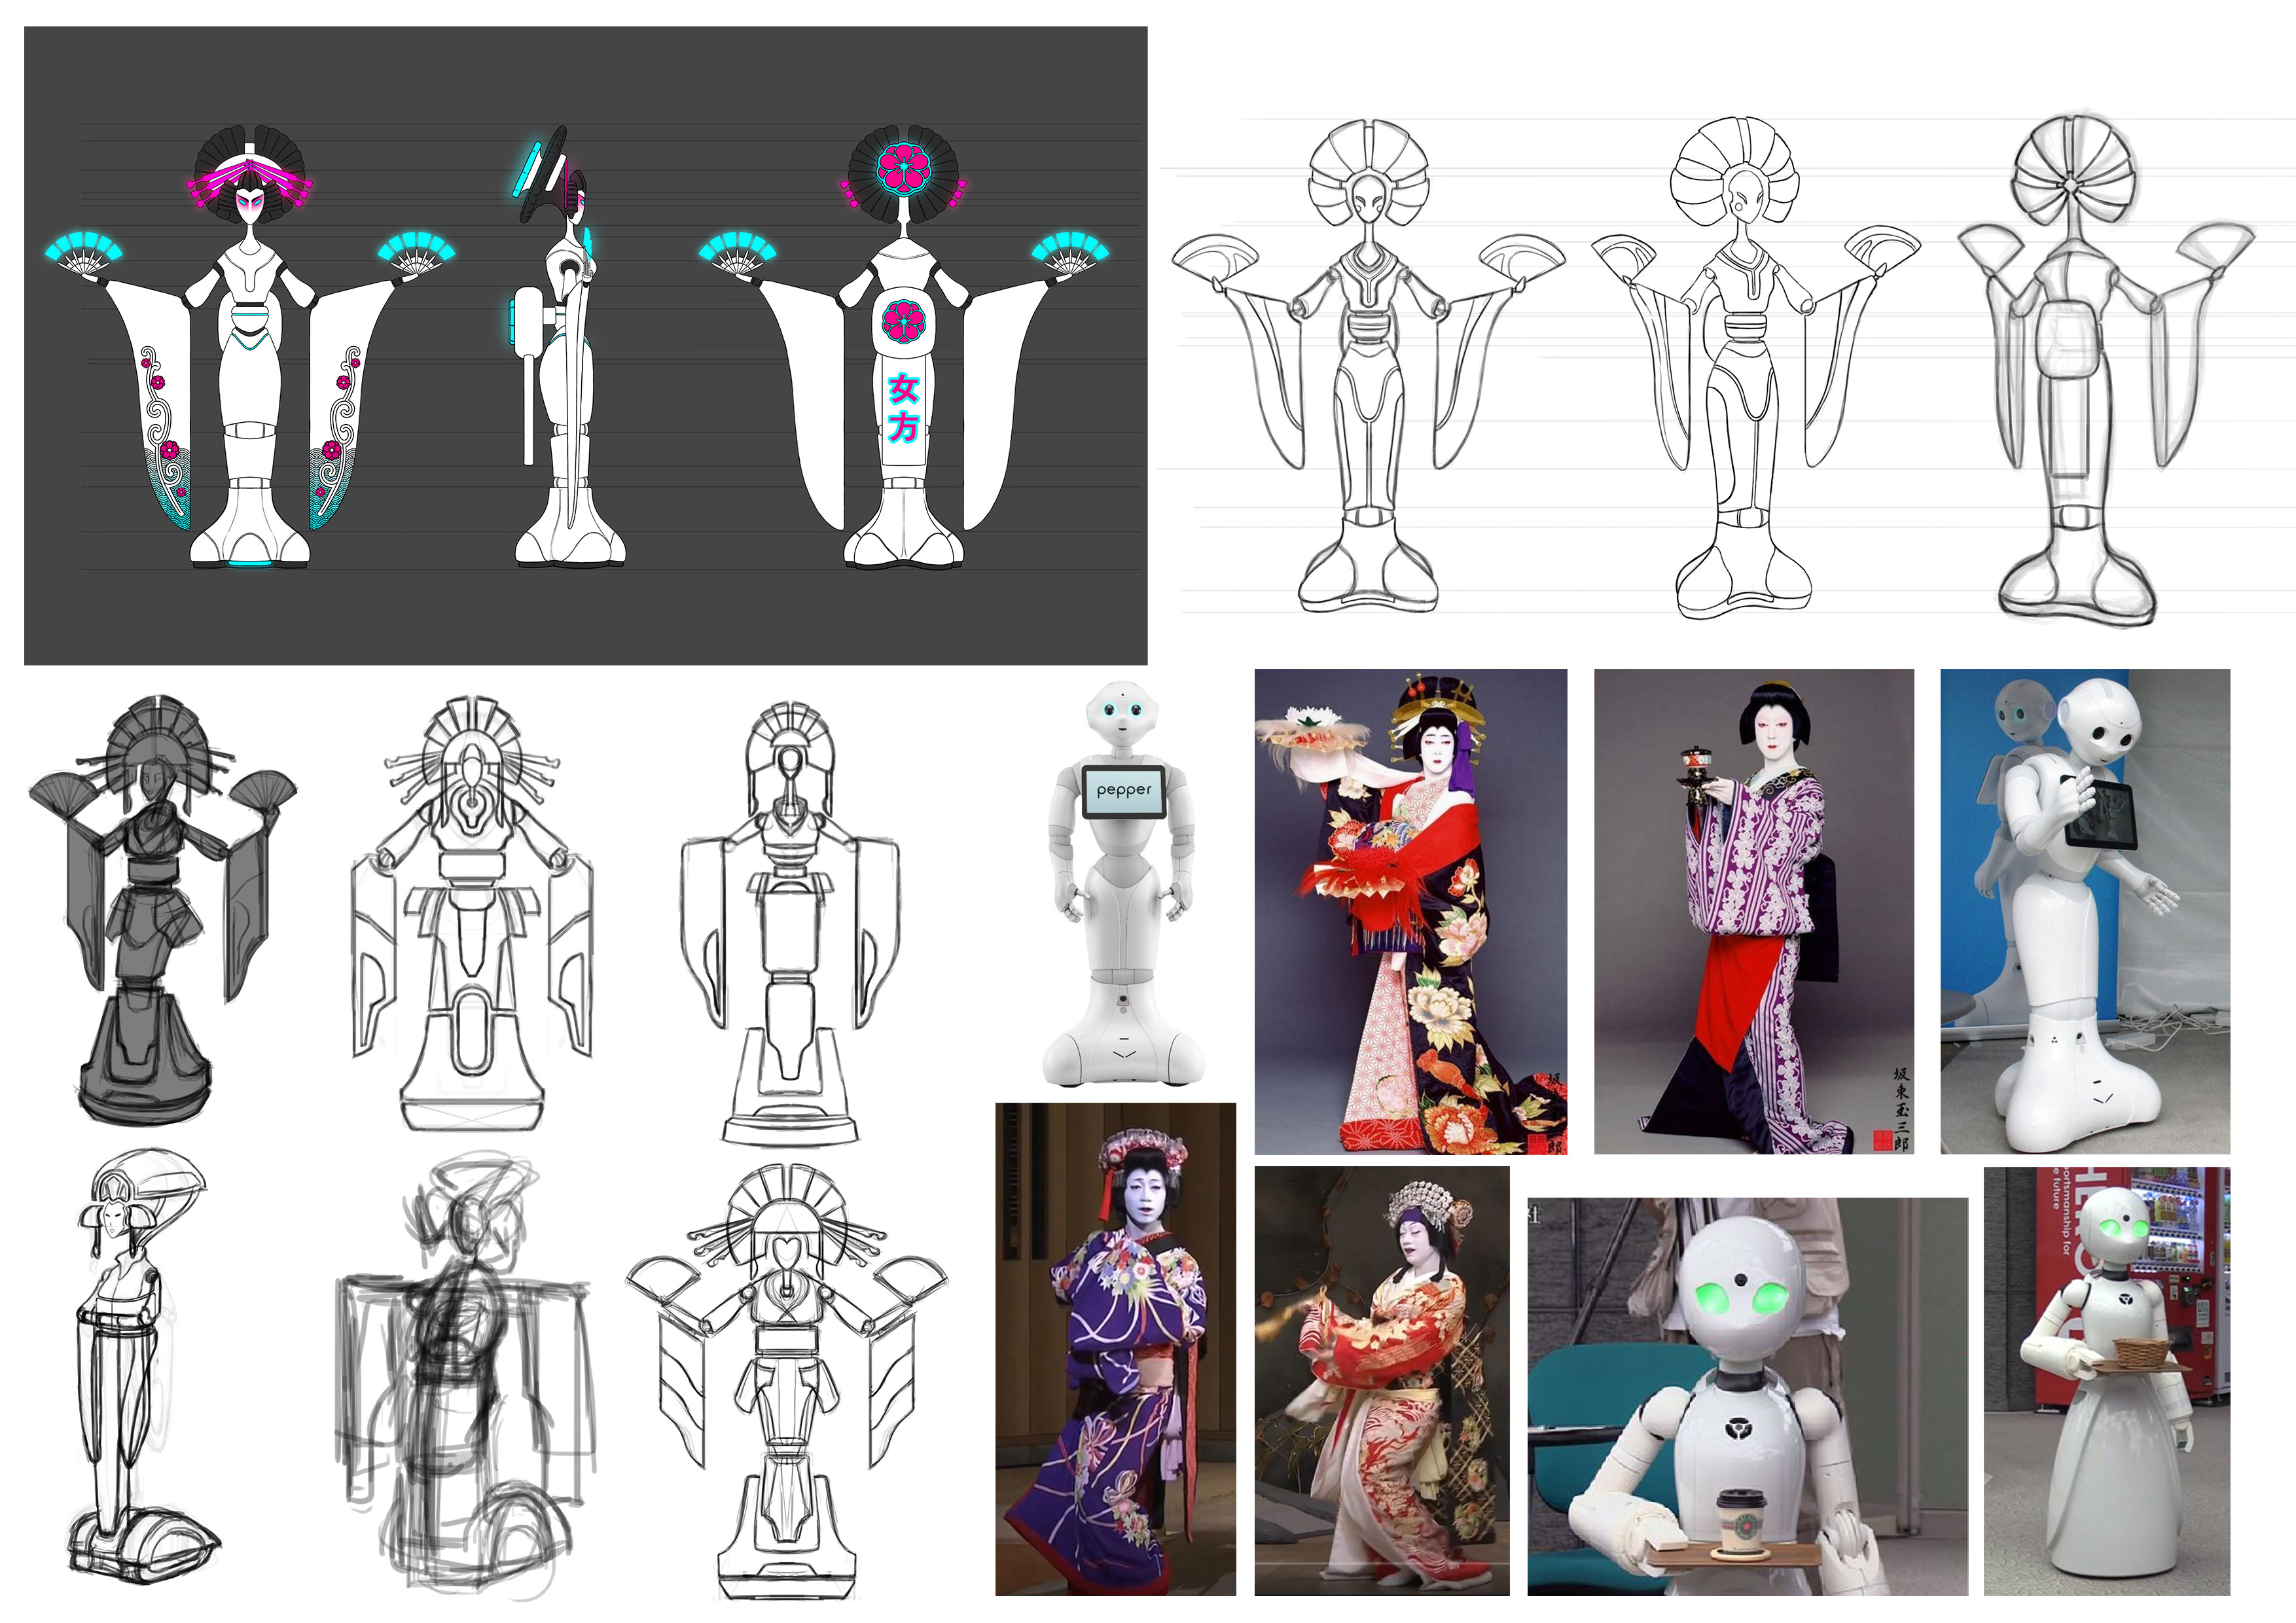 Reference and initial sketches and thumbnails